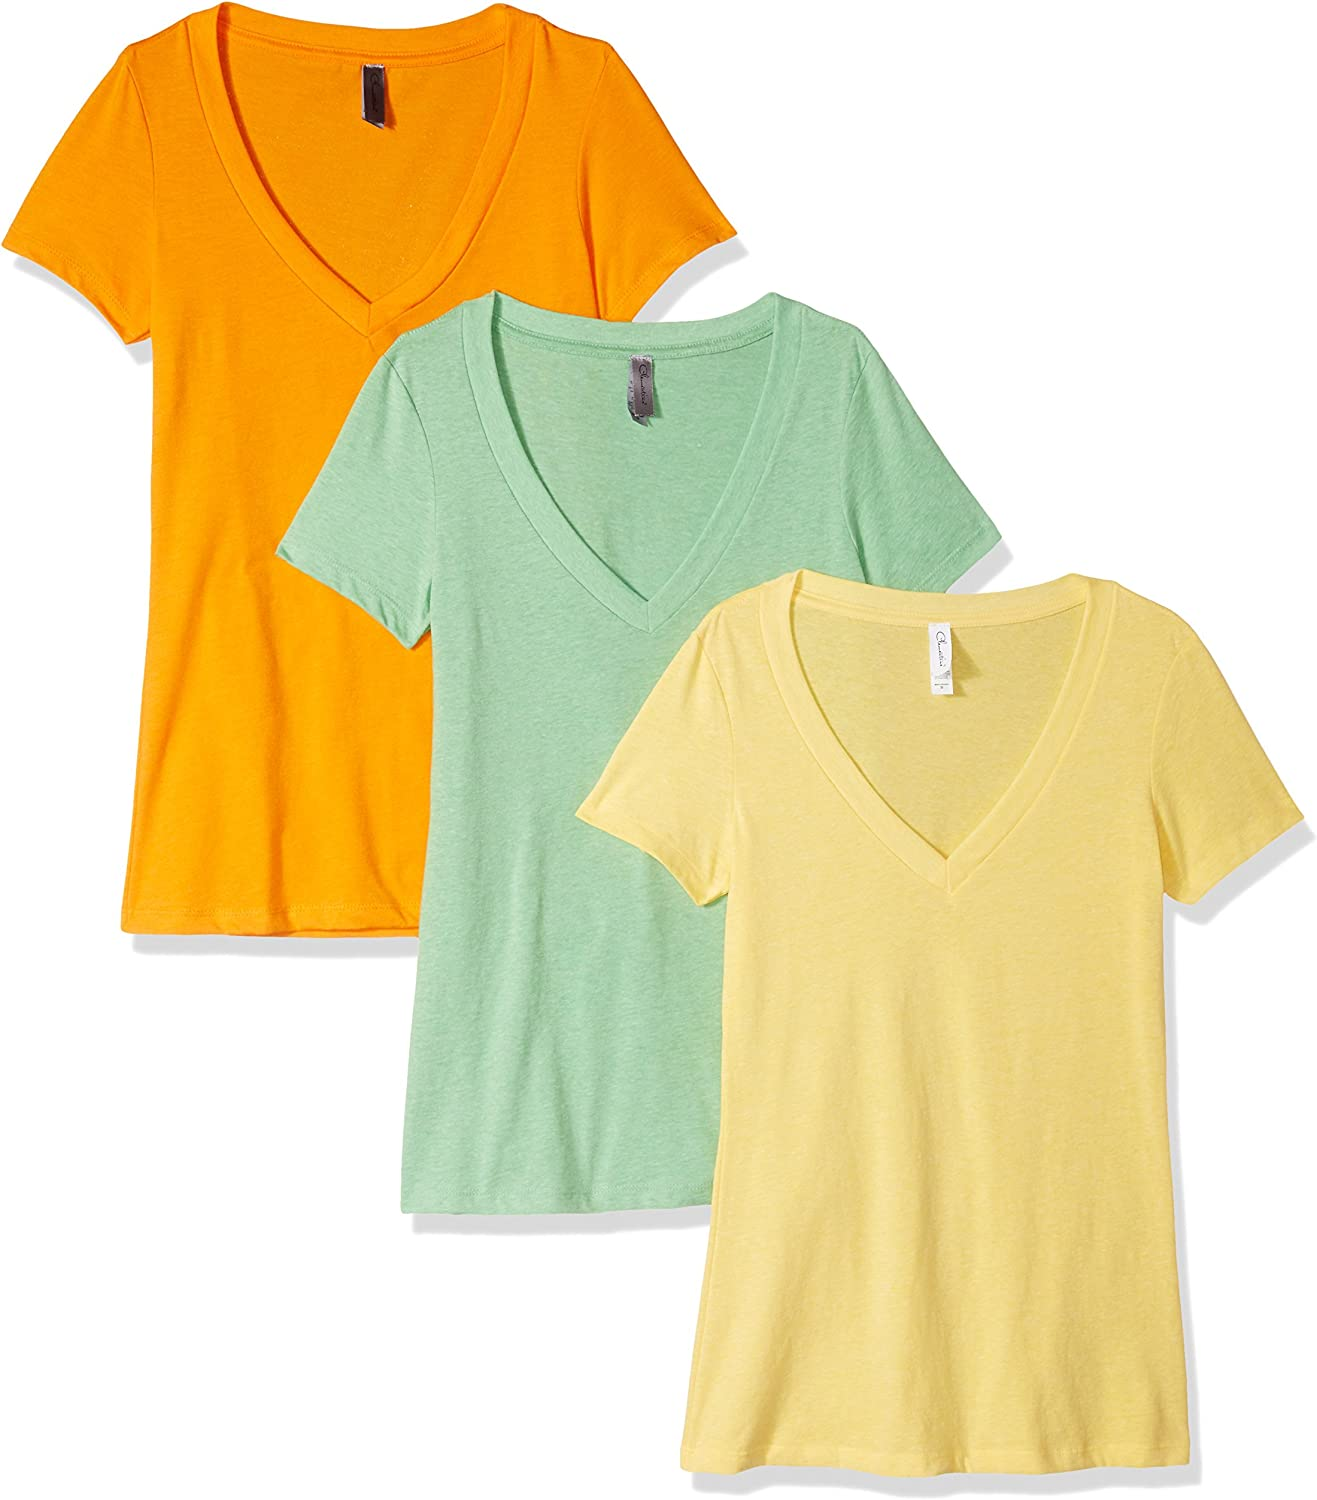 Clementine Apparel Women's Petite Plus Deep V Neck Tee (Pack of 3)